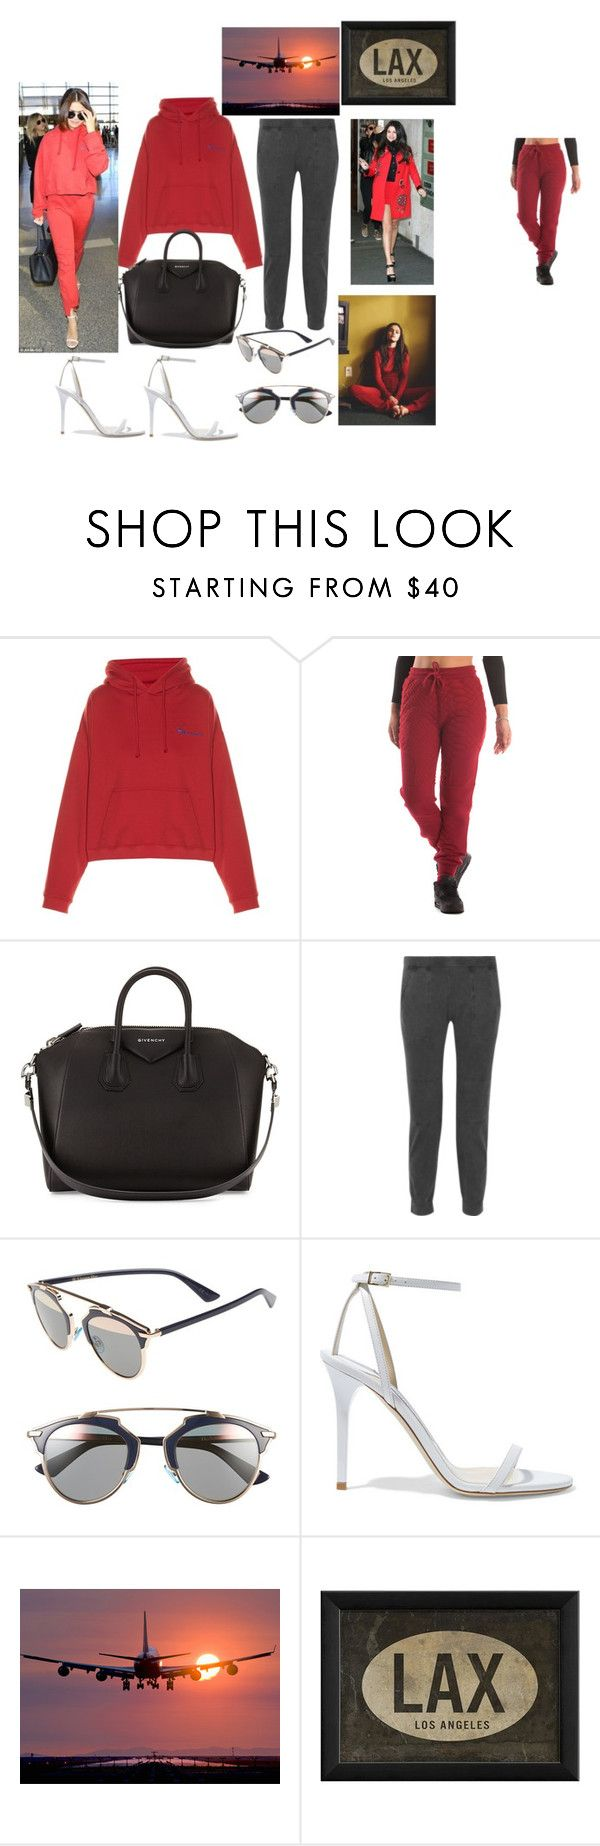 """Selena Gomex airport inspired look"" by itsbrianasanders ❤ liked on Polyvore featuring Vetements, Crooks & Castles, Givenchy, James Perse, Christian Dior, Jimmy Choo and Spicher and Company"